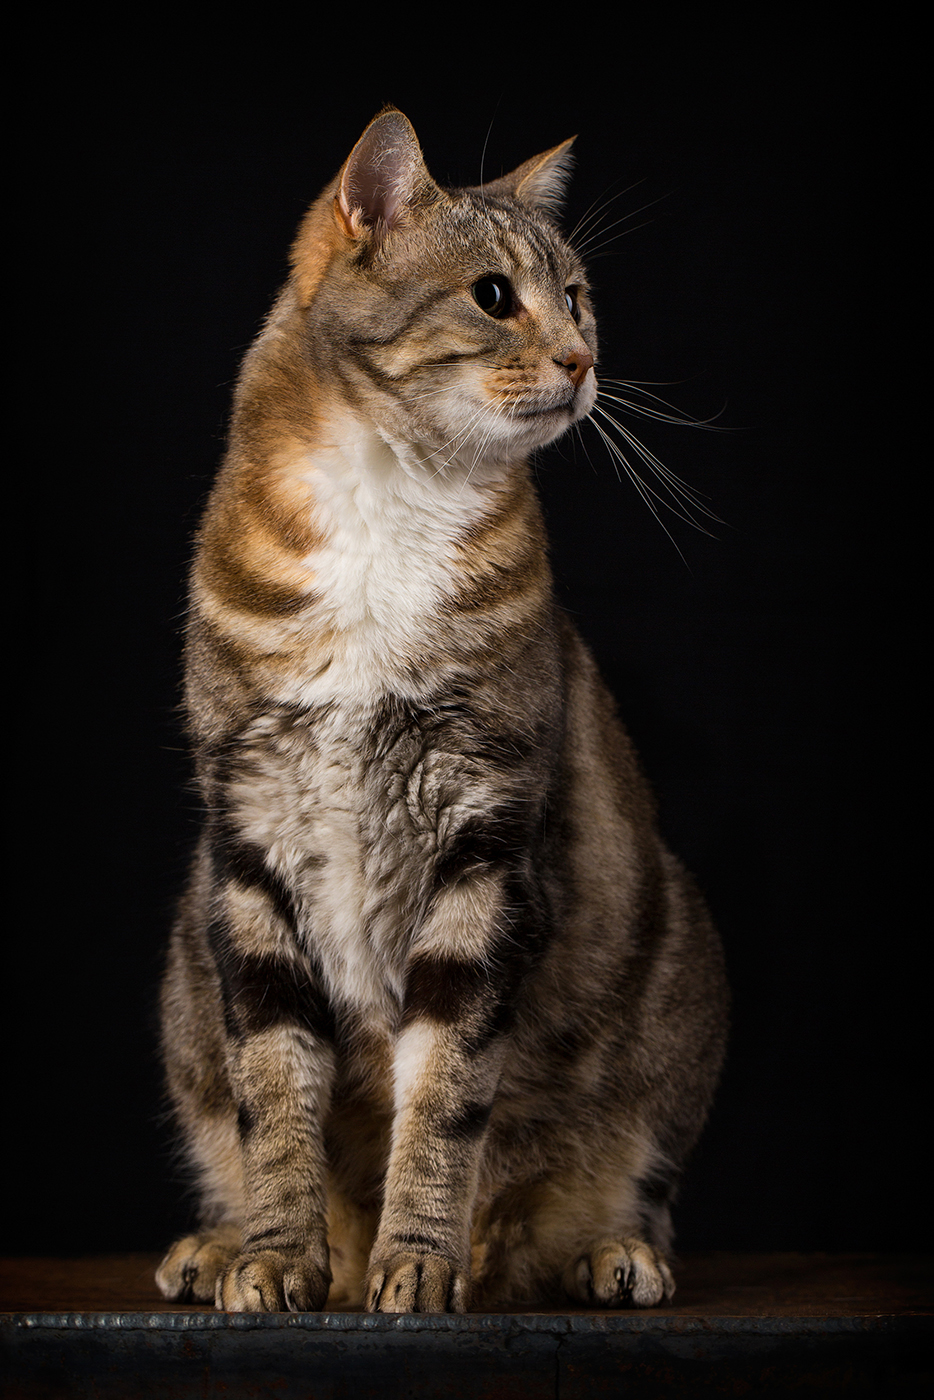 photographe-animaux-domestiques-chat-guillaume-heraud-18